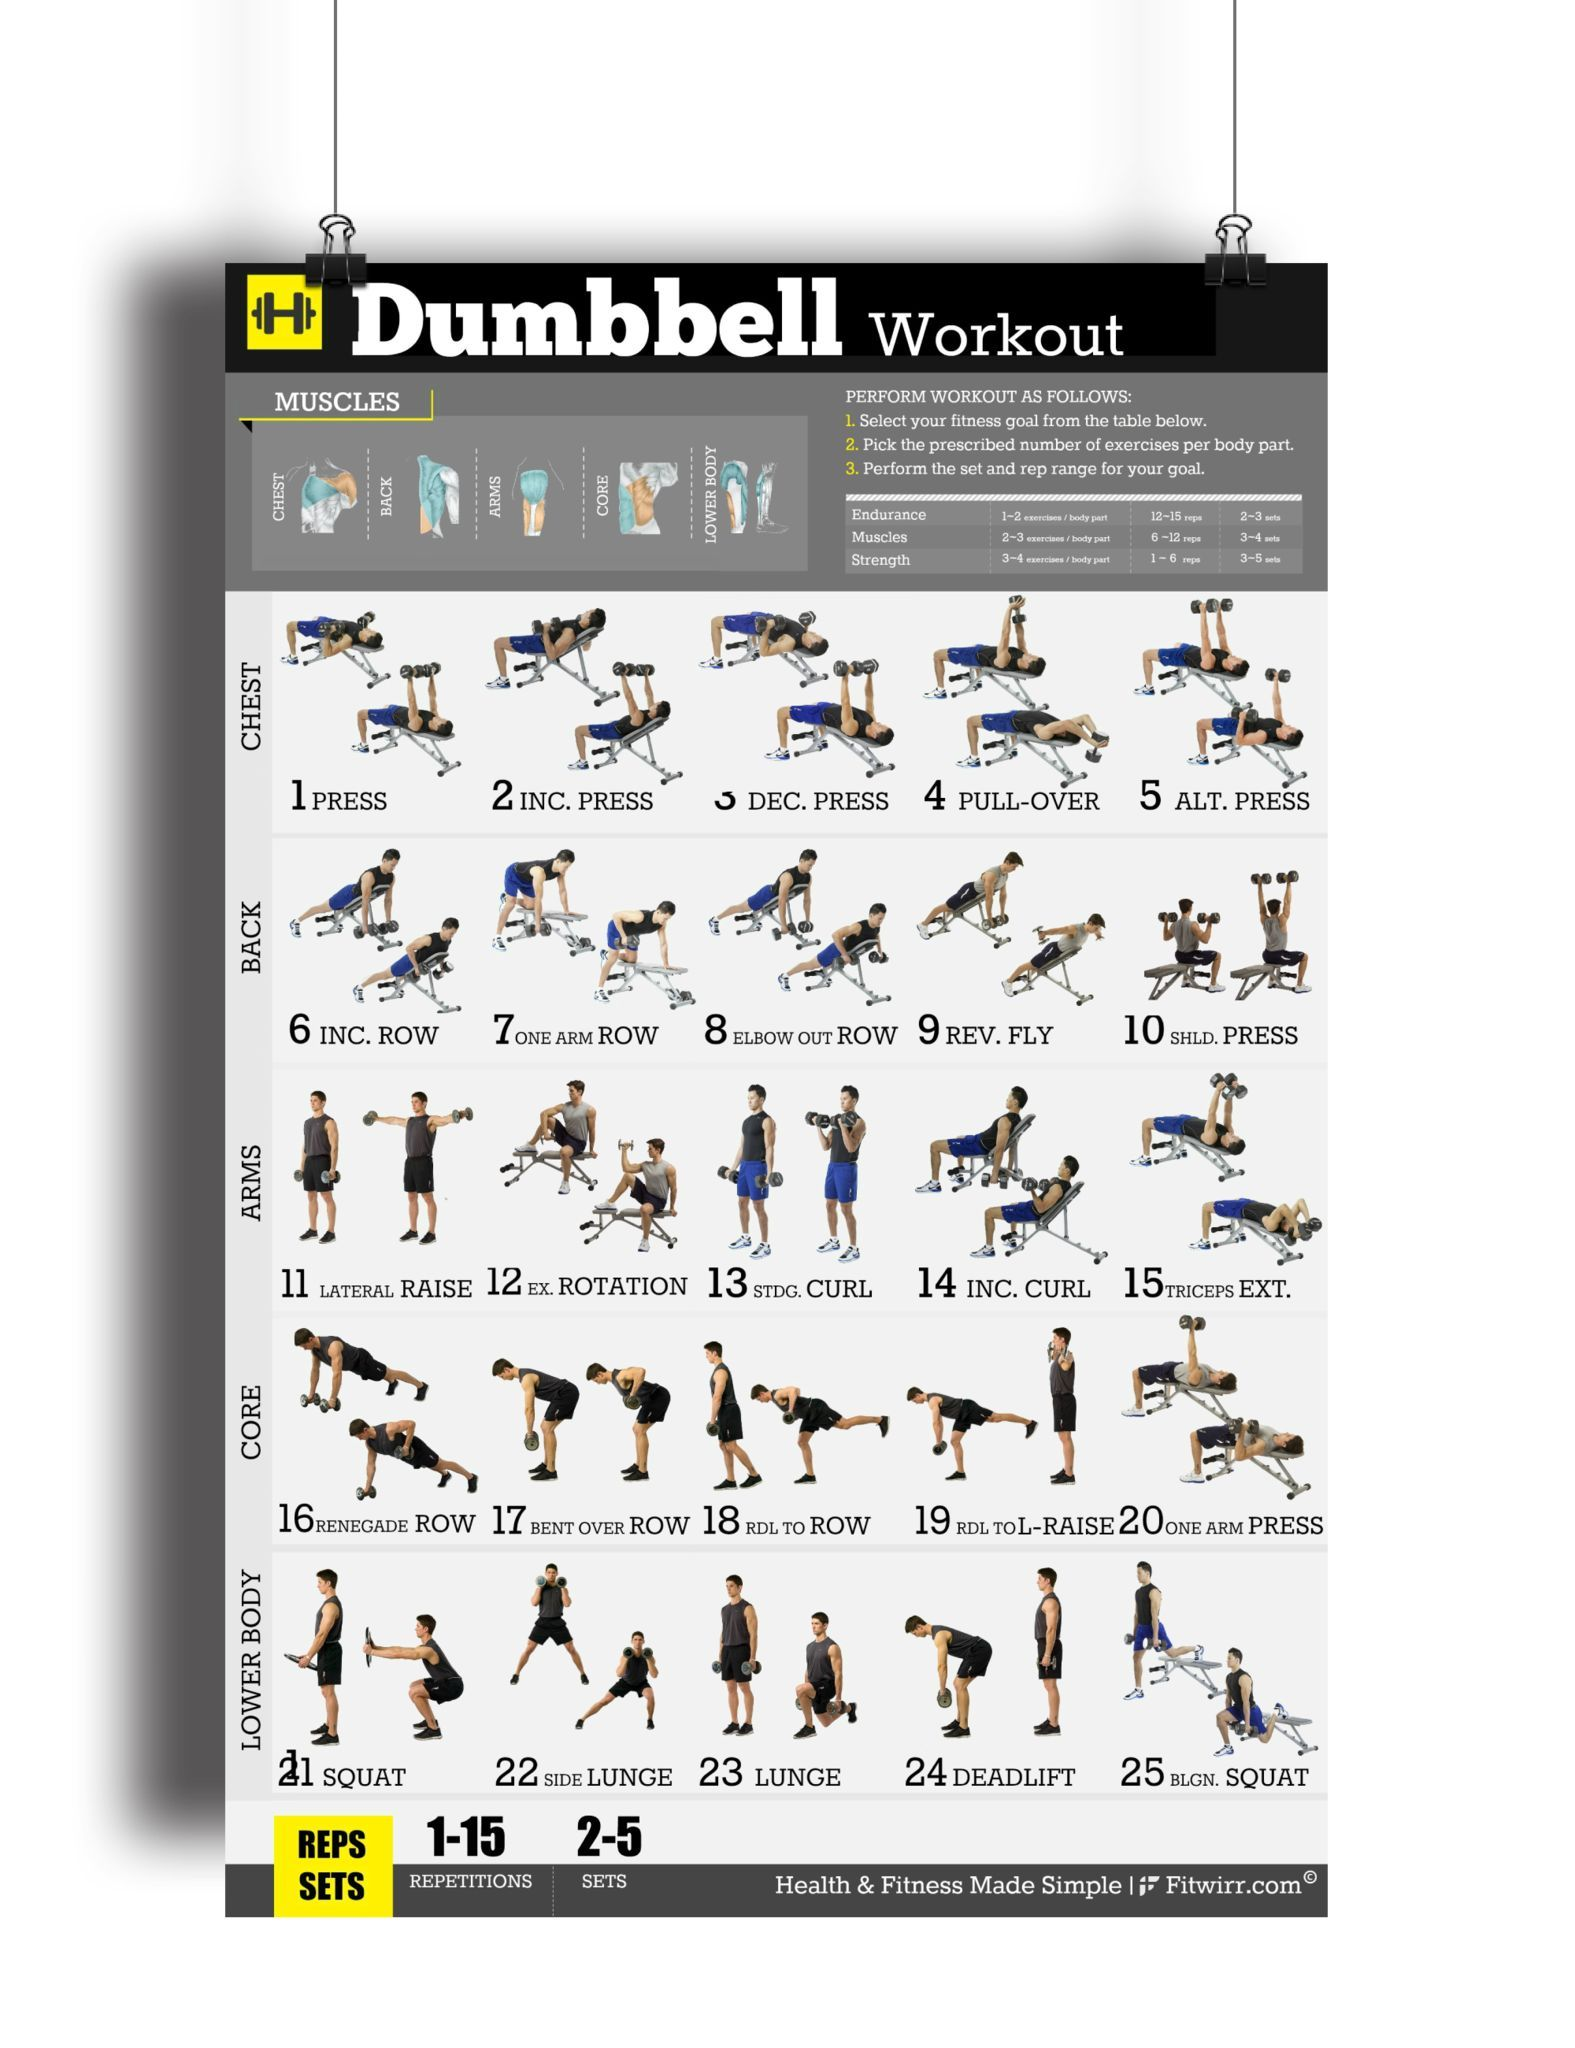 dumbbell exercise workout poster - laminated